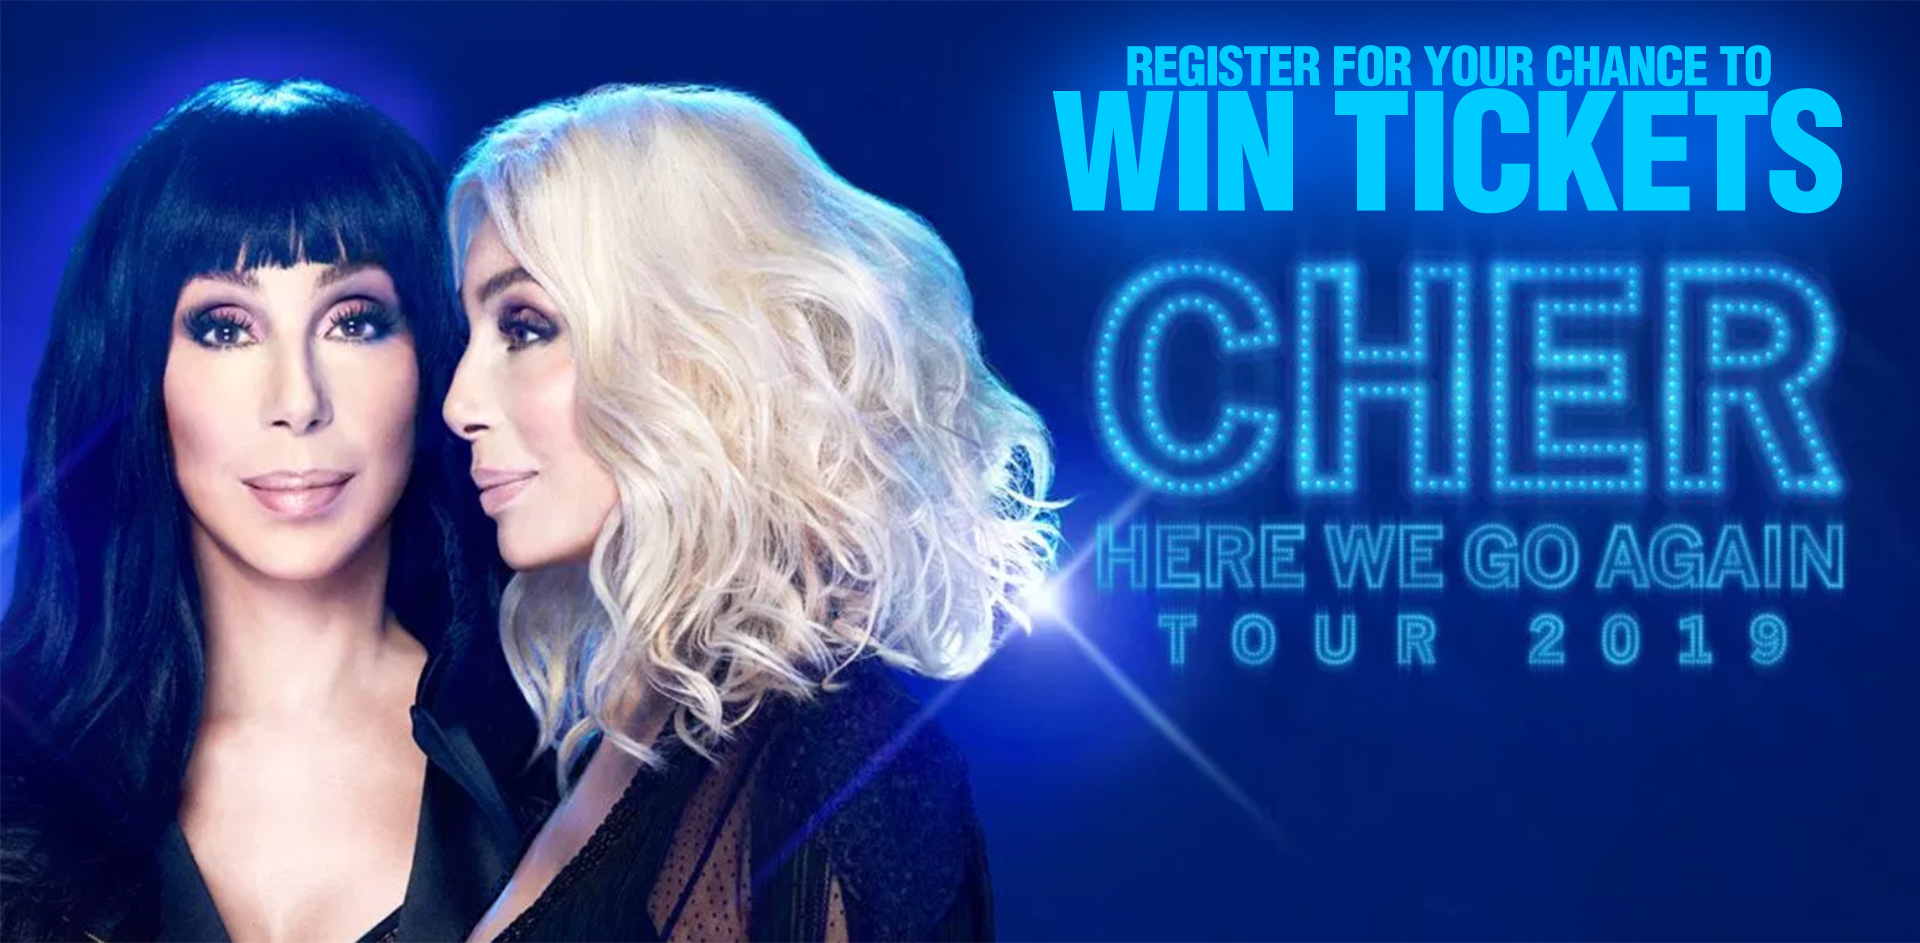 Register for your chance to win tickets to See Cher